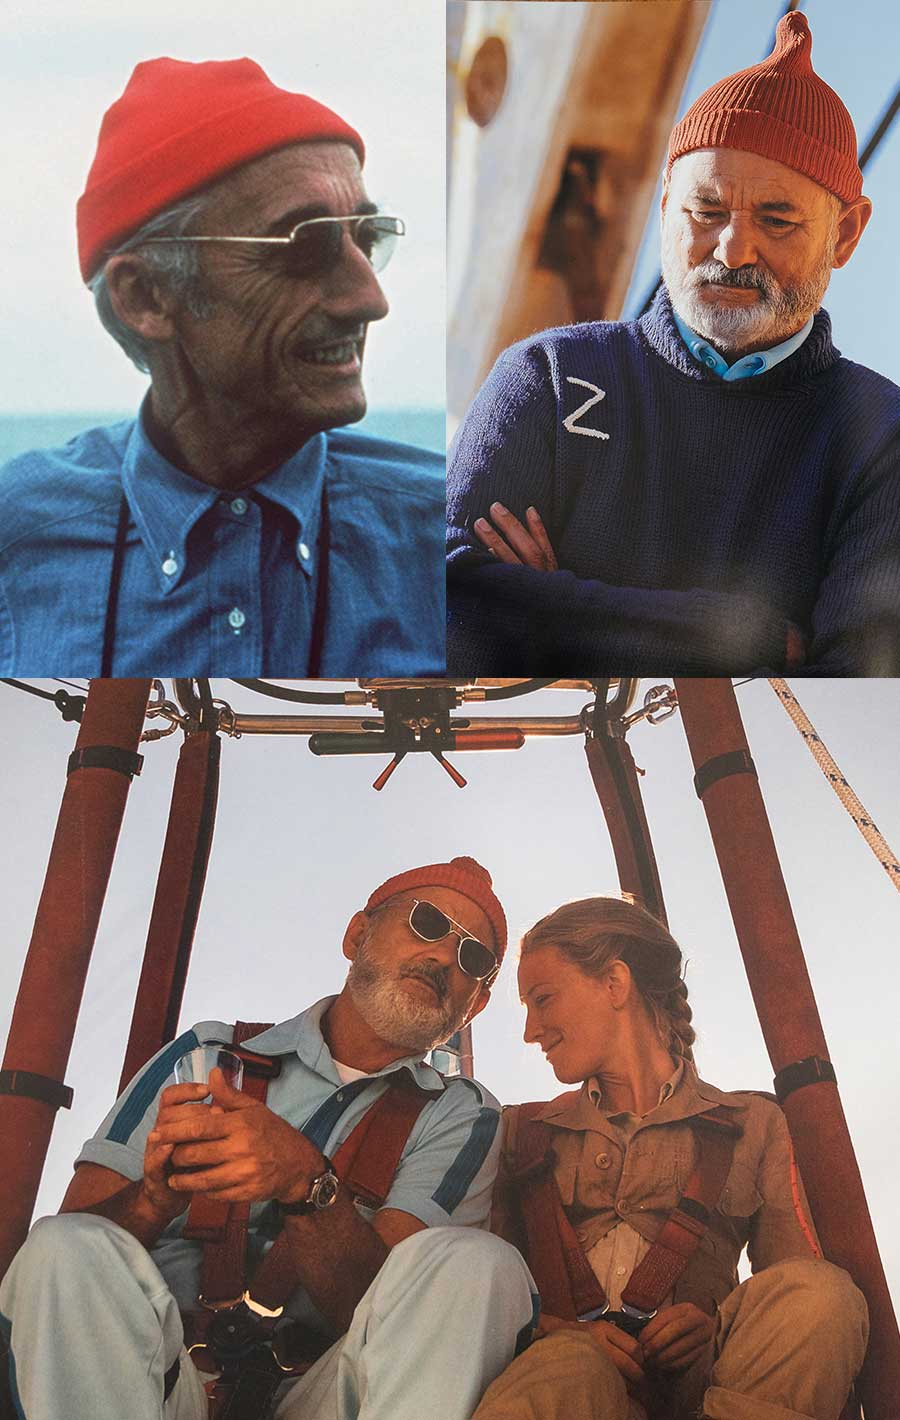 Life Aquatic clothing